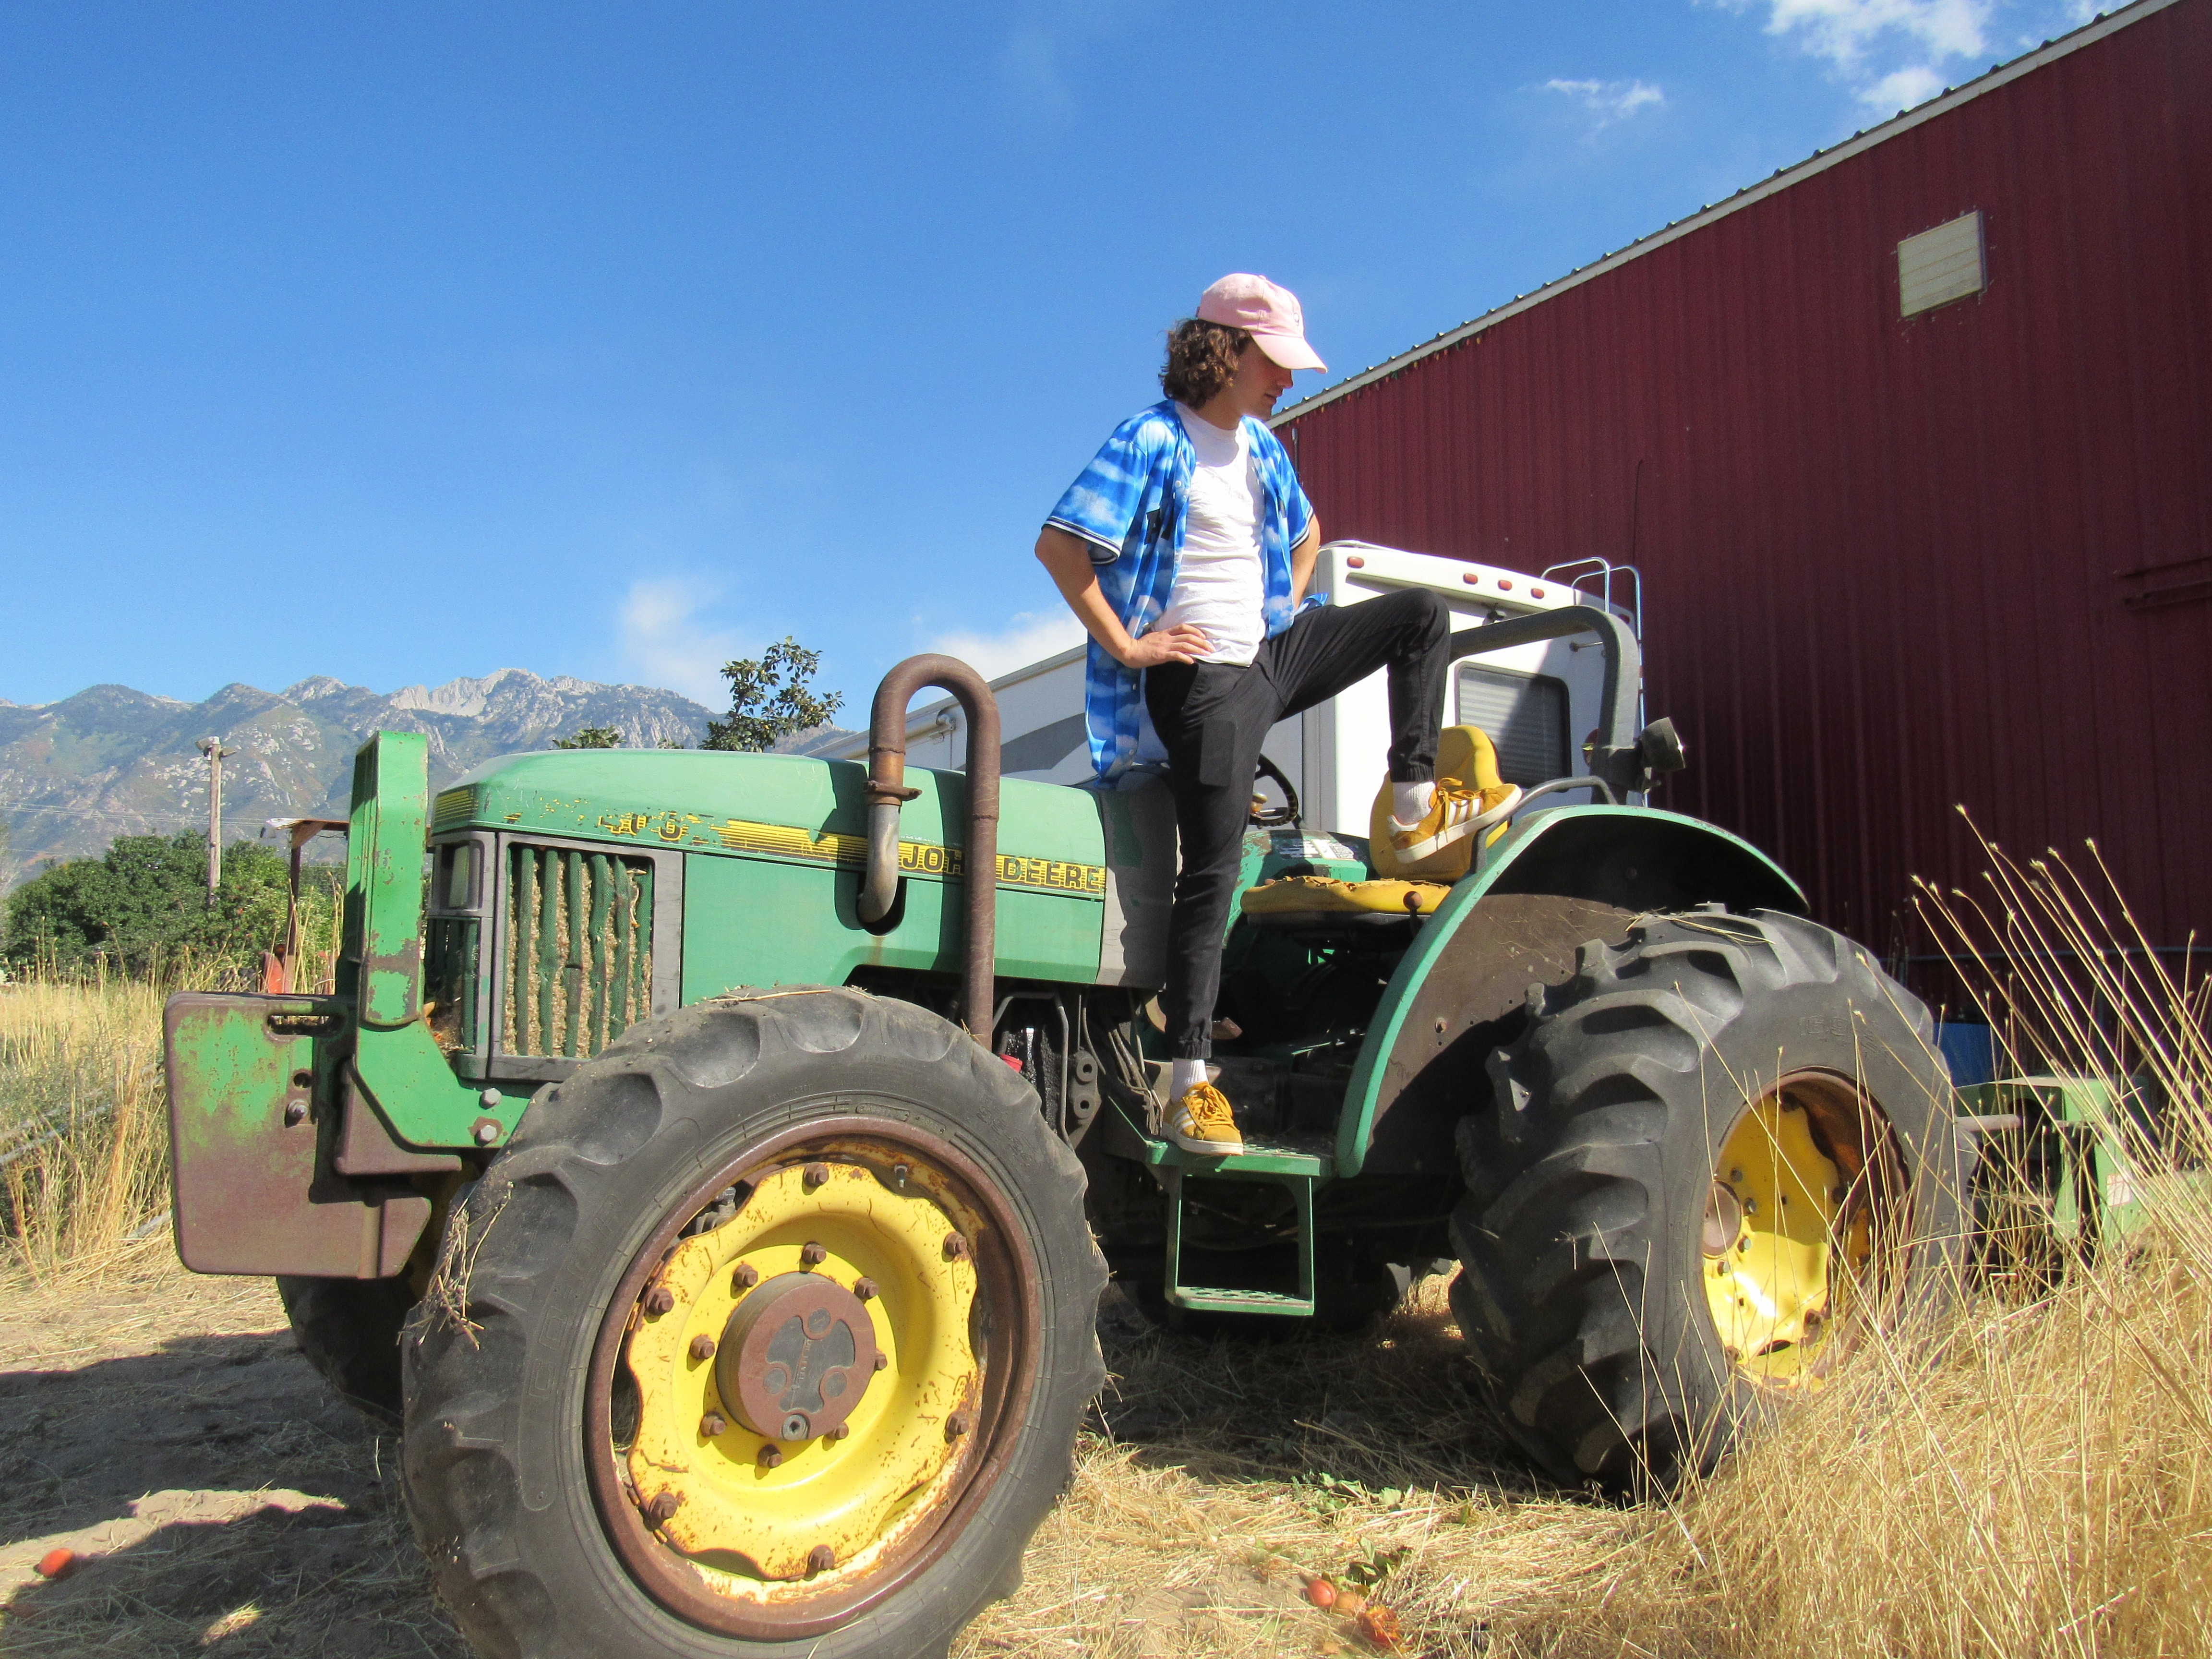 A boy with a blue shirt, yellow shoes and a pink hat stands on the side of a tractor with one leg up on top of the wheel.